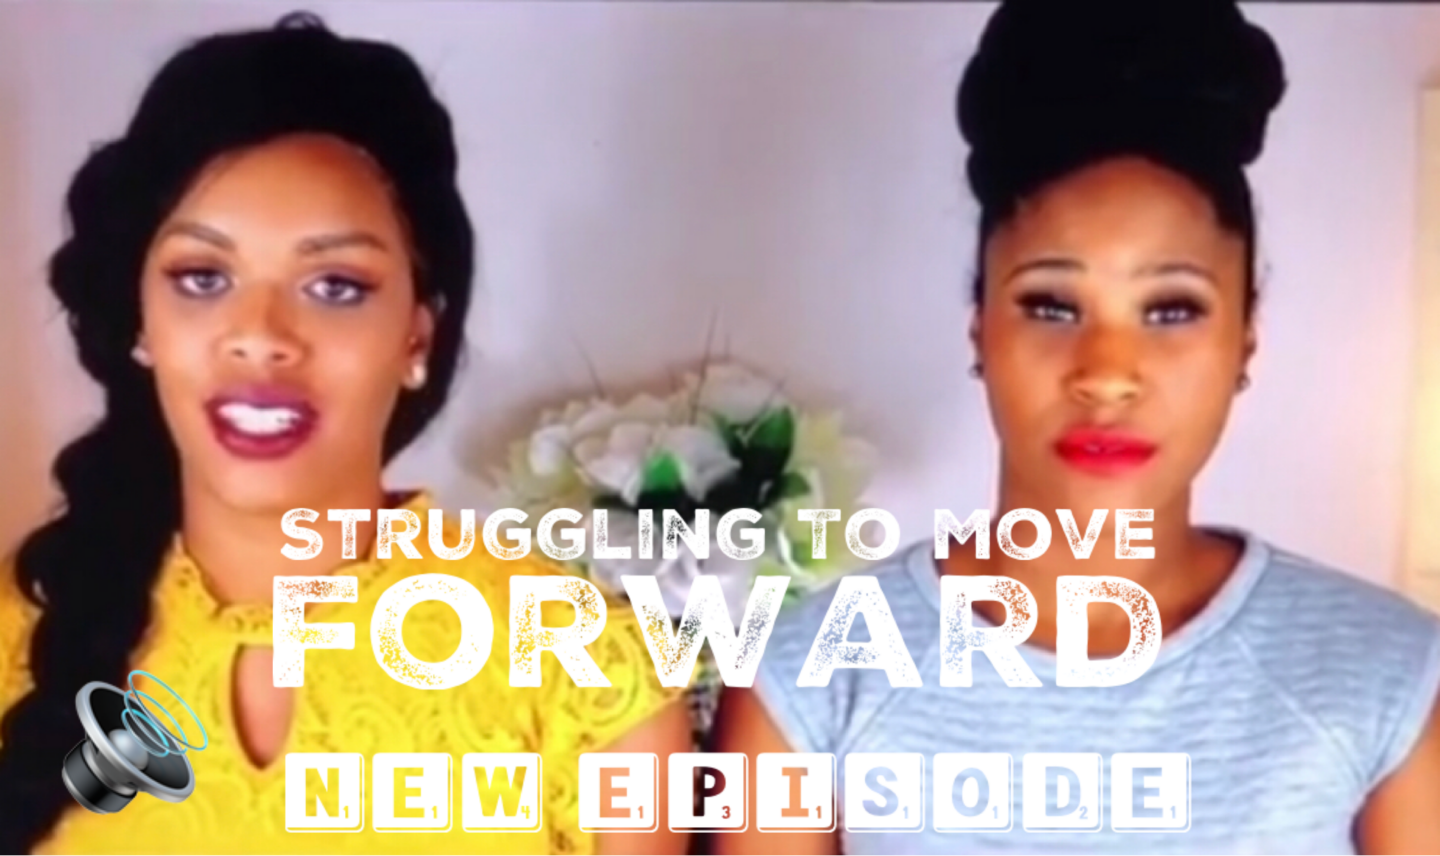 61. Stagnant: Struggling To Move Forward